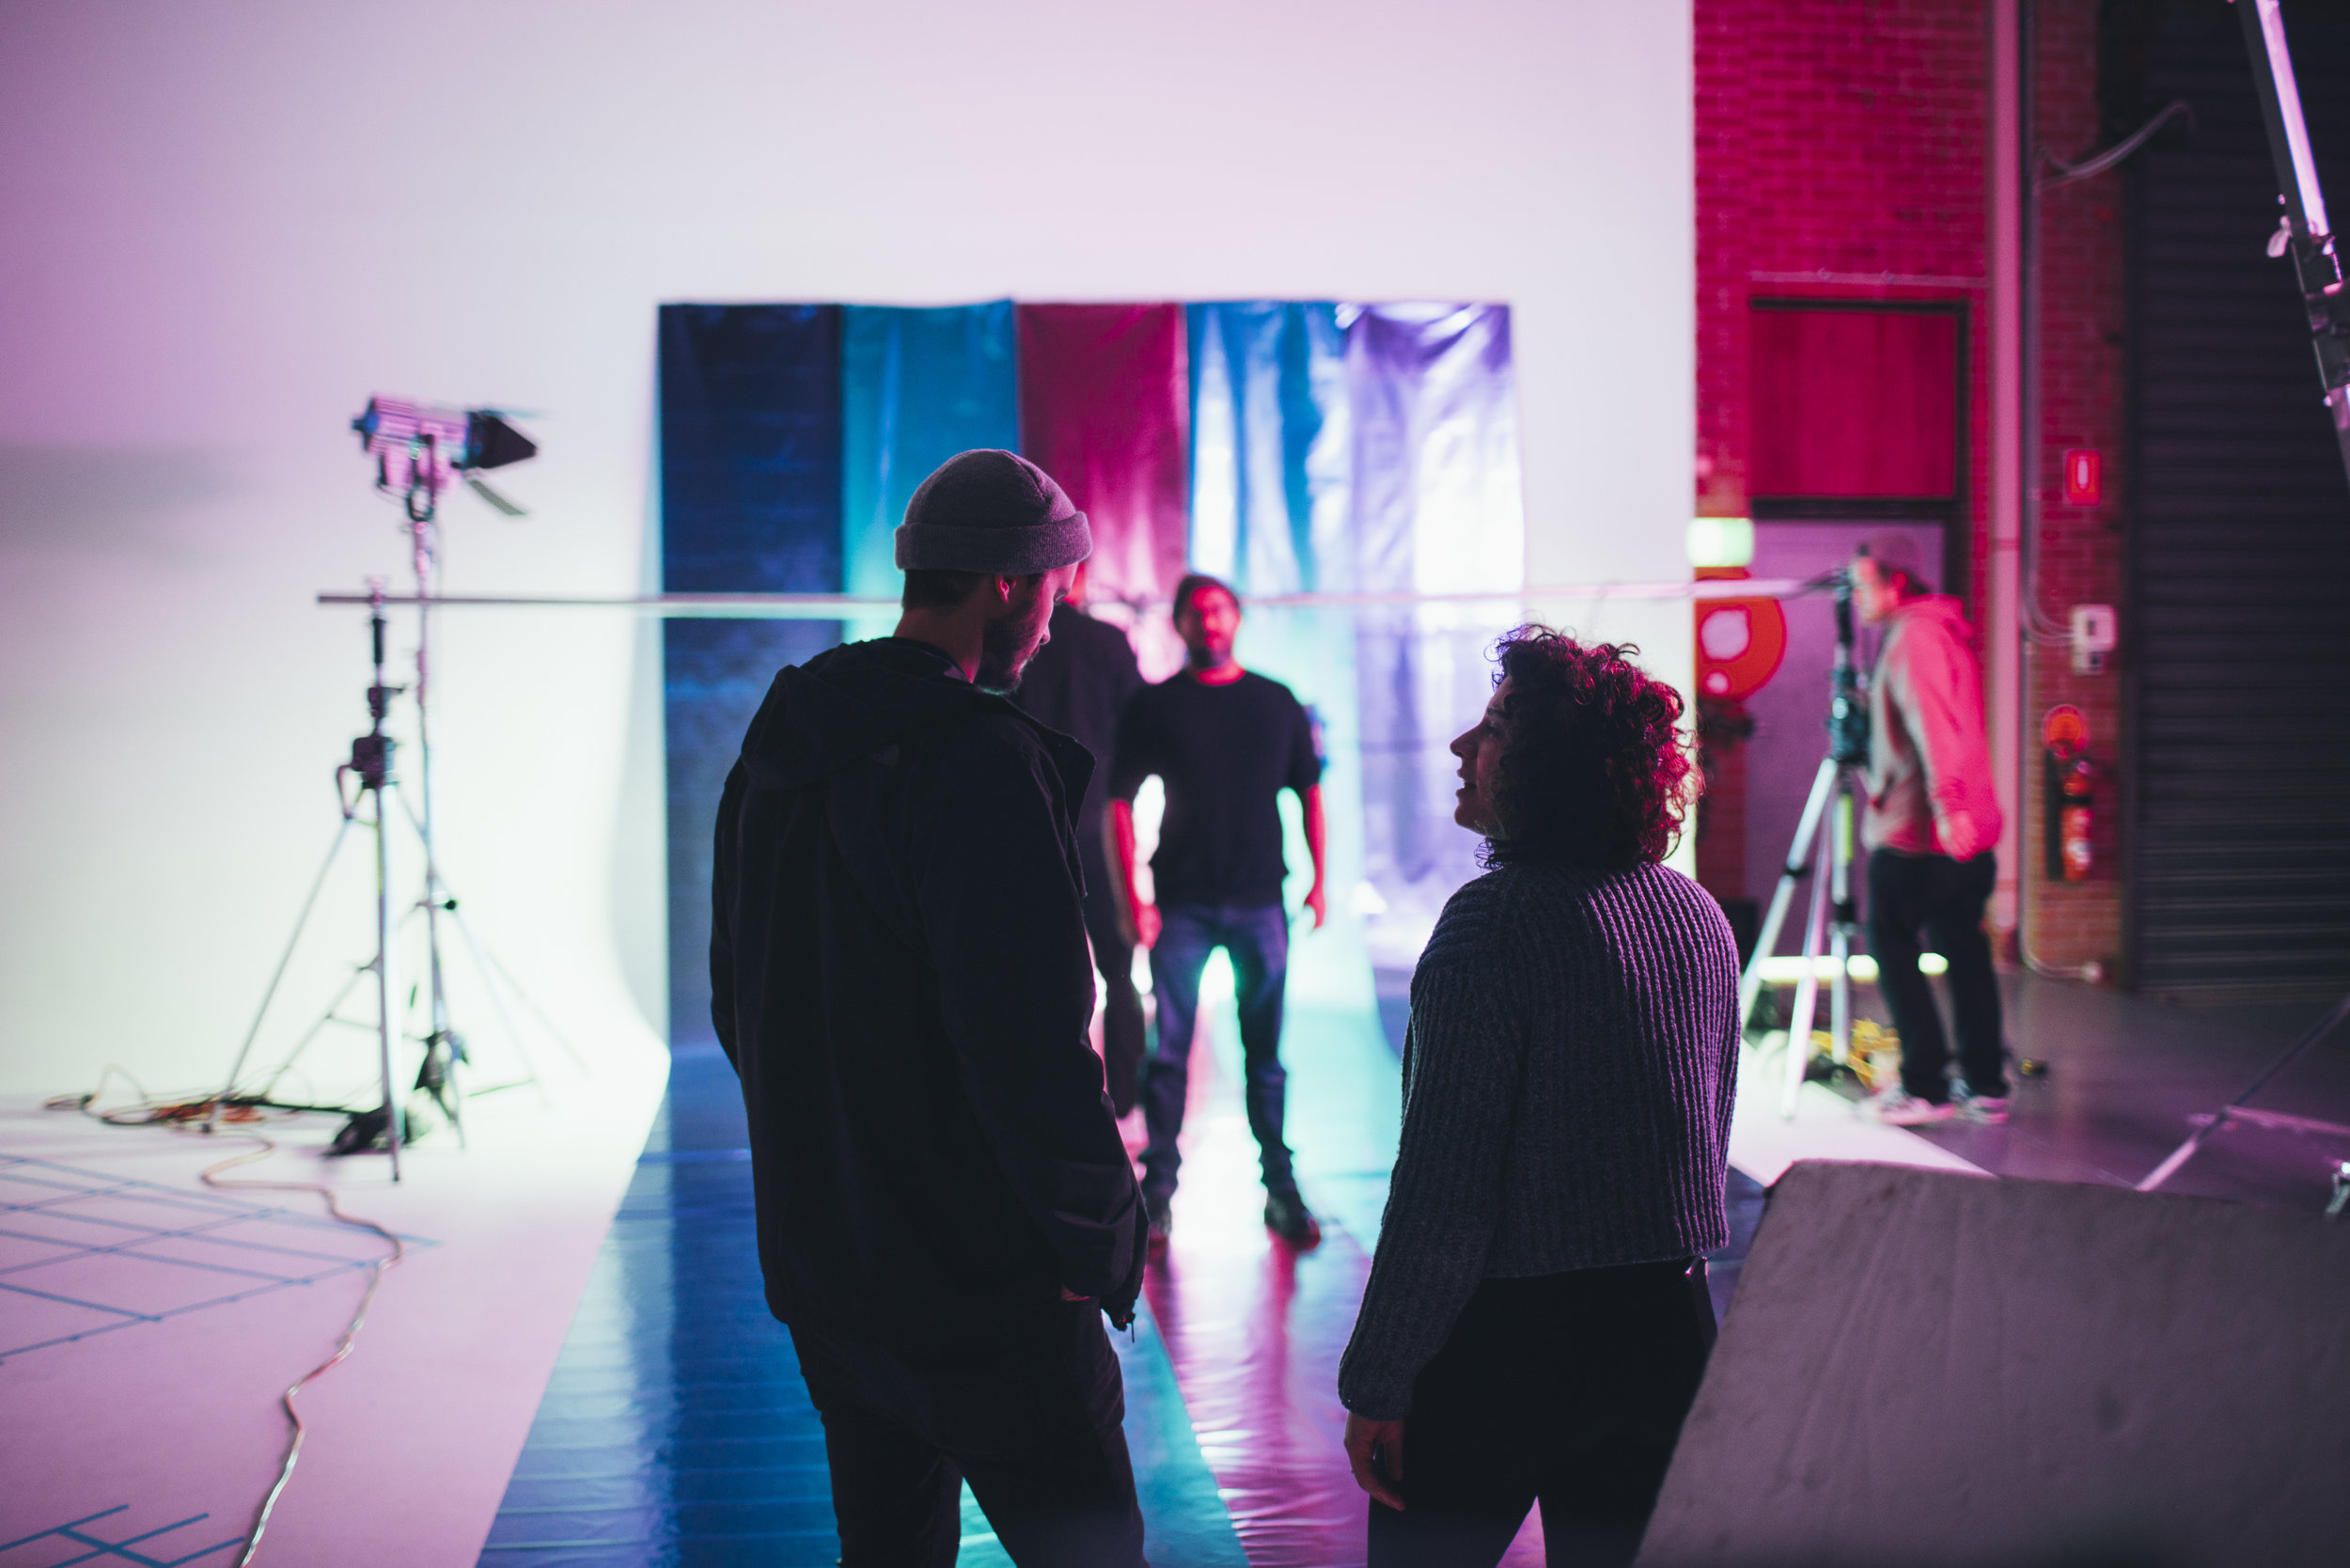 Director Rick and Art Director Bianca sussing the visuals